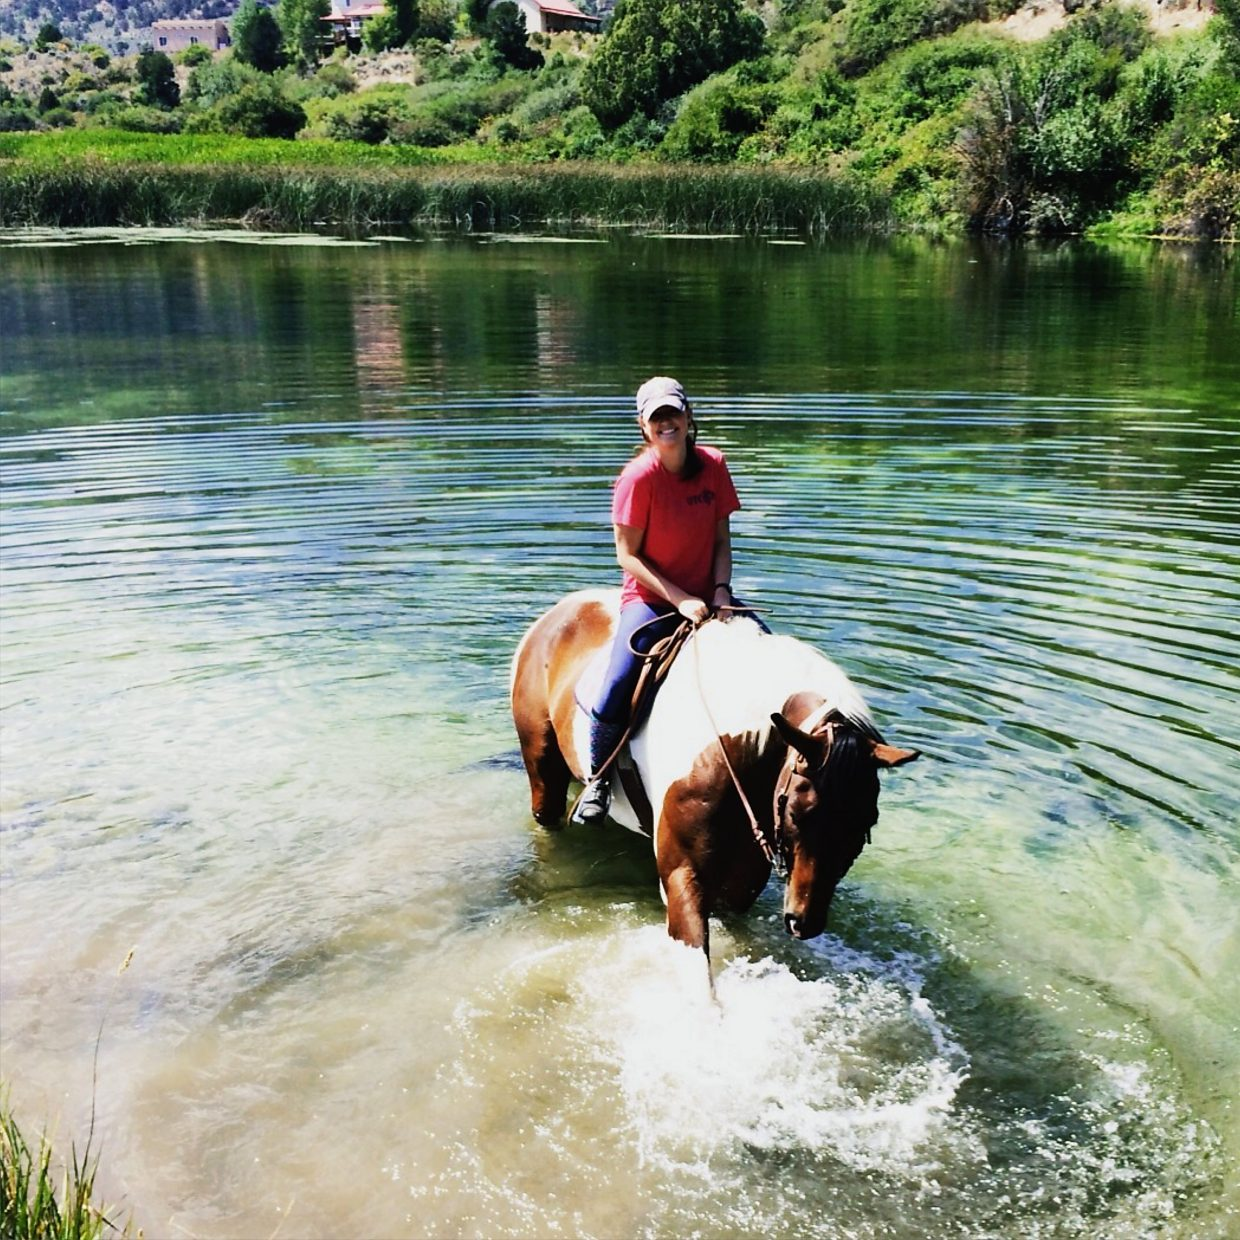 Molly Brinkmann and Snoopy cooling off in a pond along the Roaring Fork River.